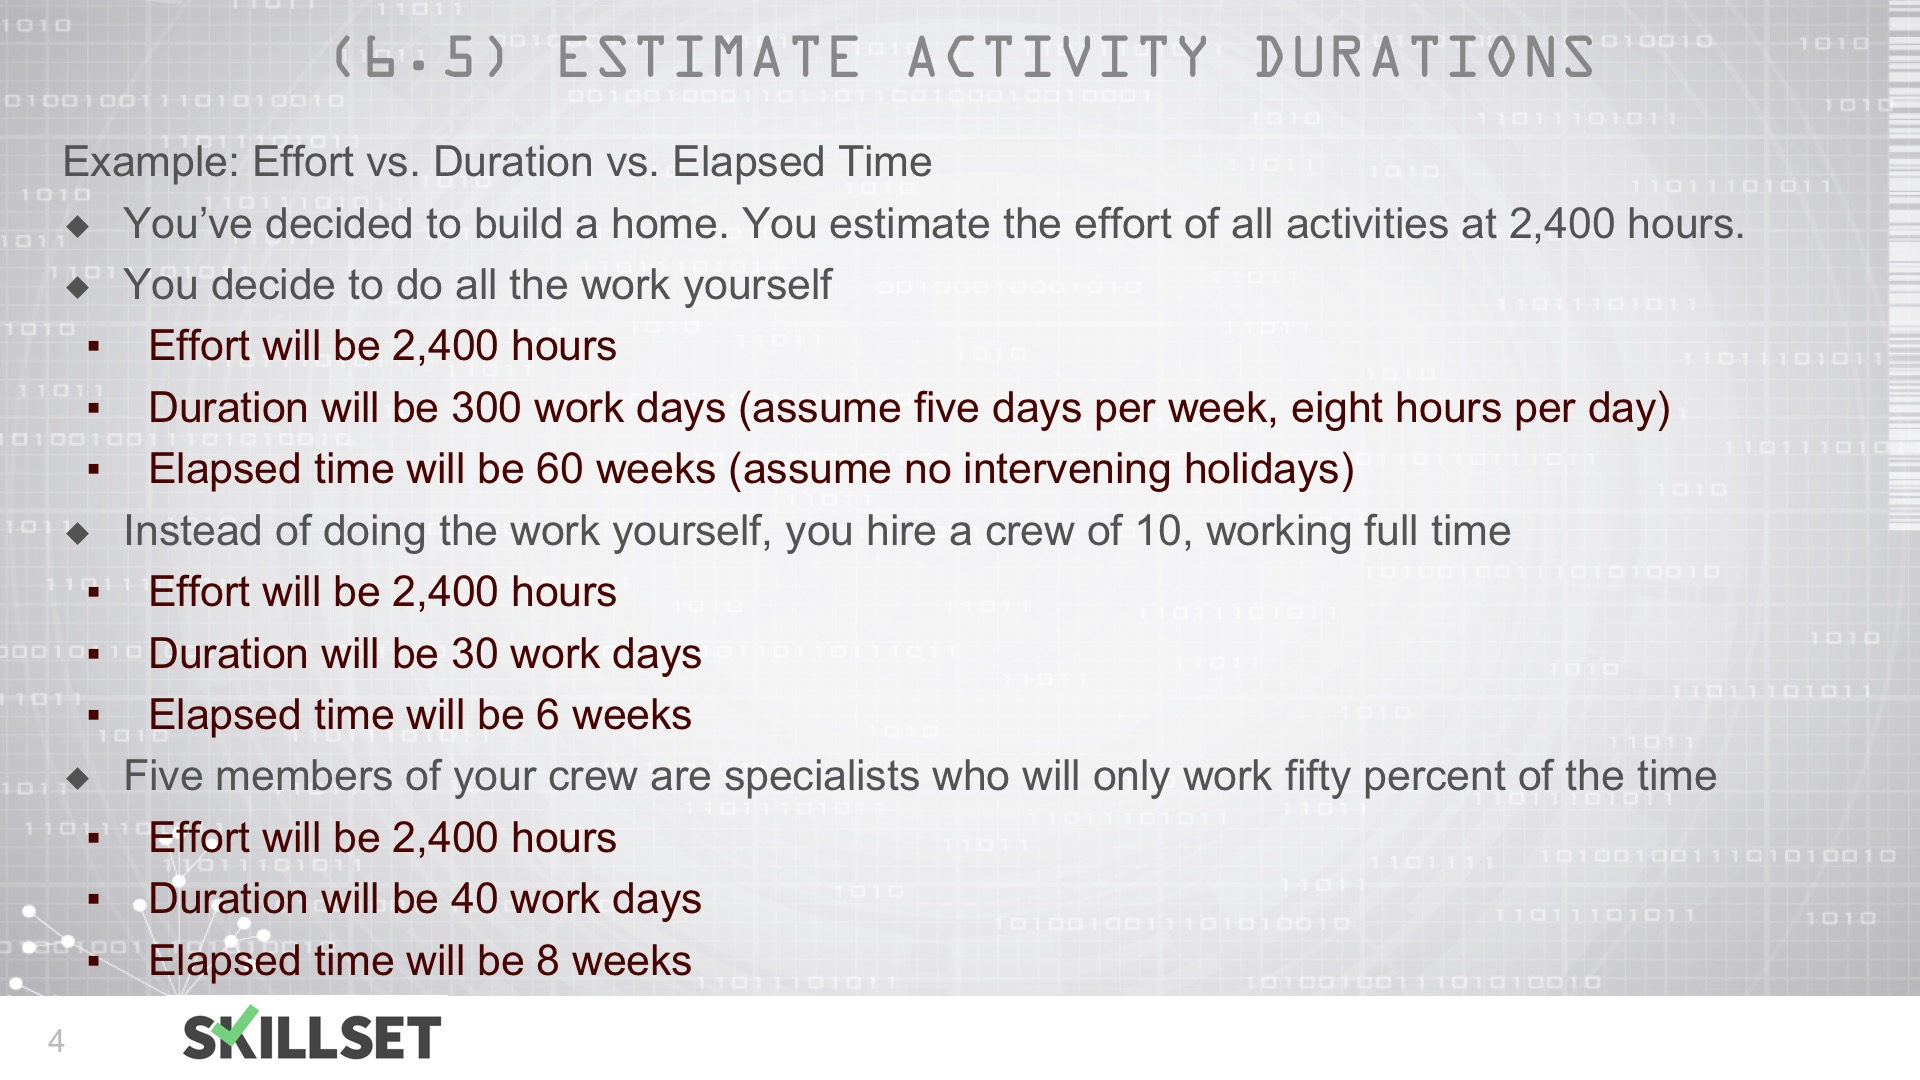 worksheet Days Elapsed the amount of time whereby a successor activity will be delayed t43 estimate duration inputs